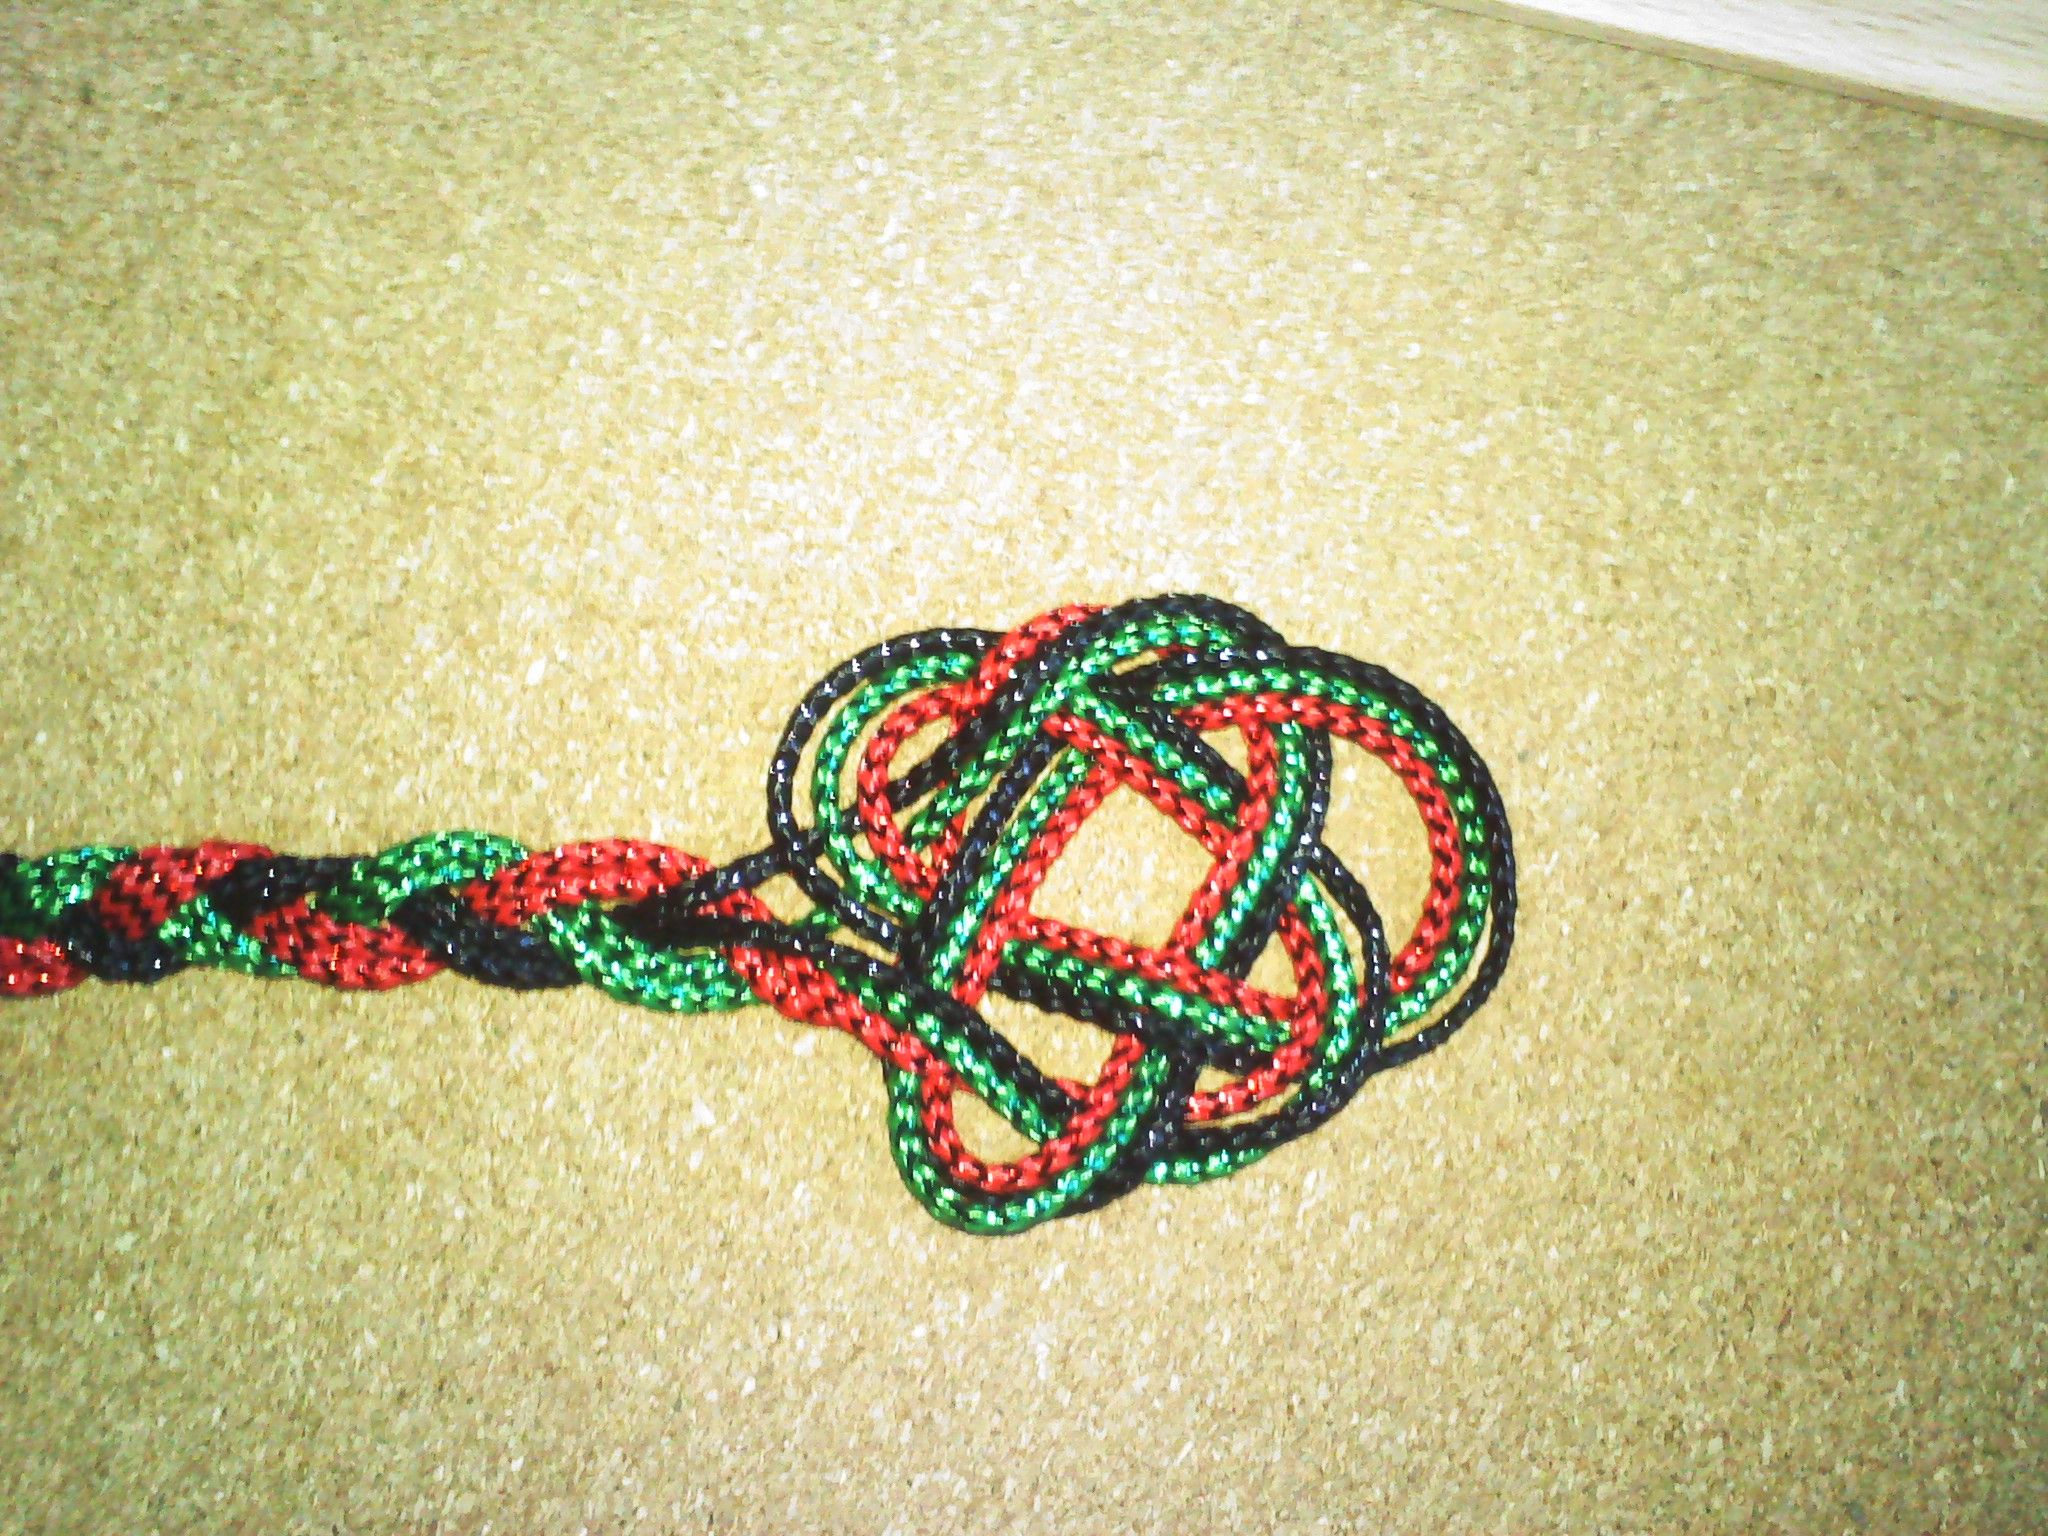 I M Being Asked A Lot Of Questions About How To Actually Make The Cords Used In Handfasting Here S Way Do It Firstly Don T Use Ribbons Unless You